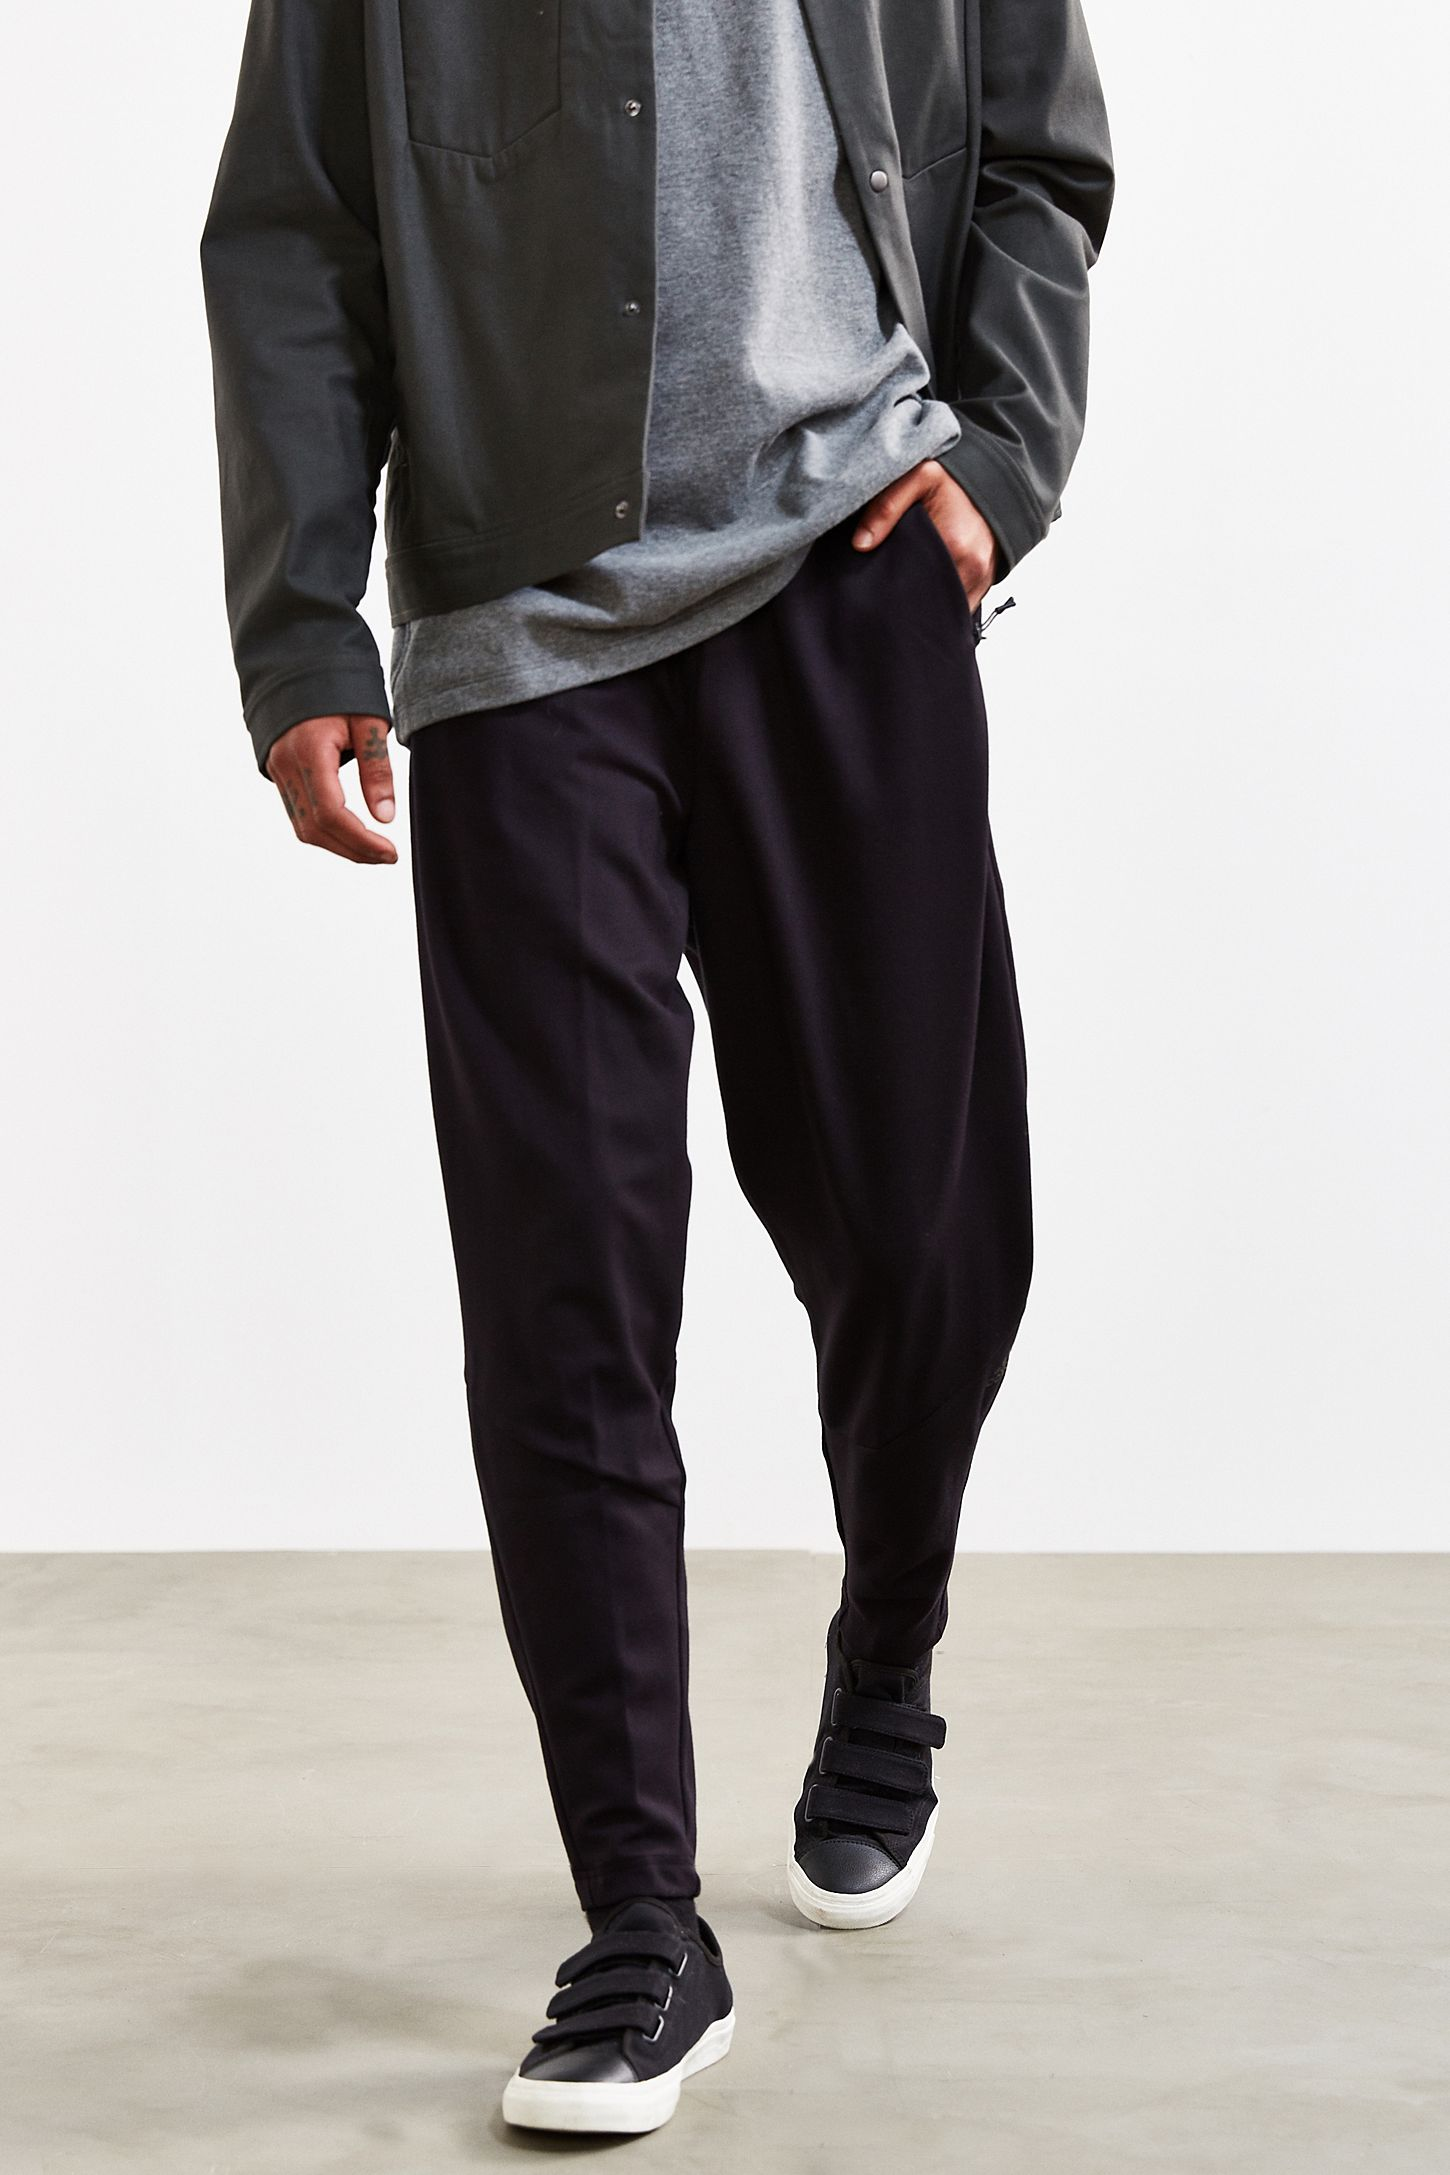 Adidas Tapered Track Pant Urban Outfitters